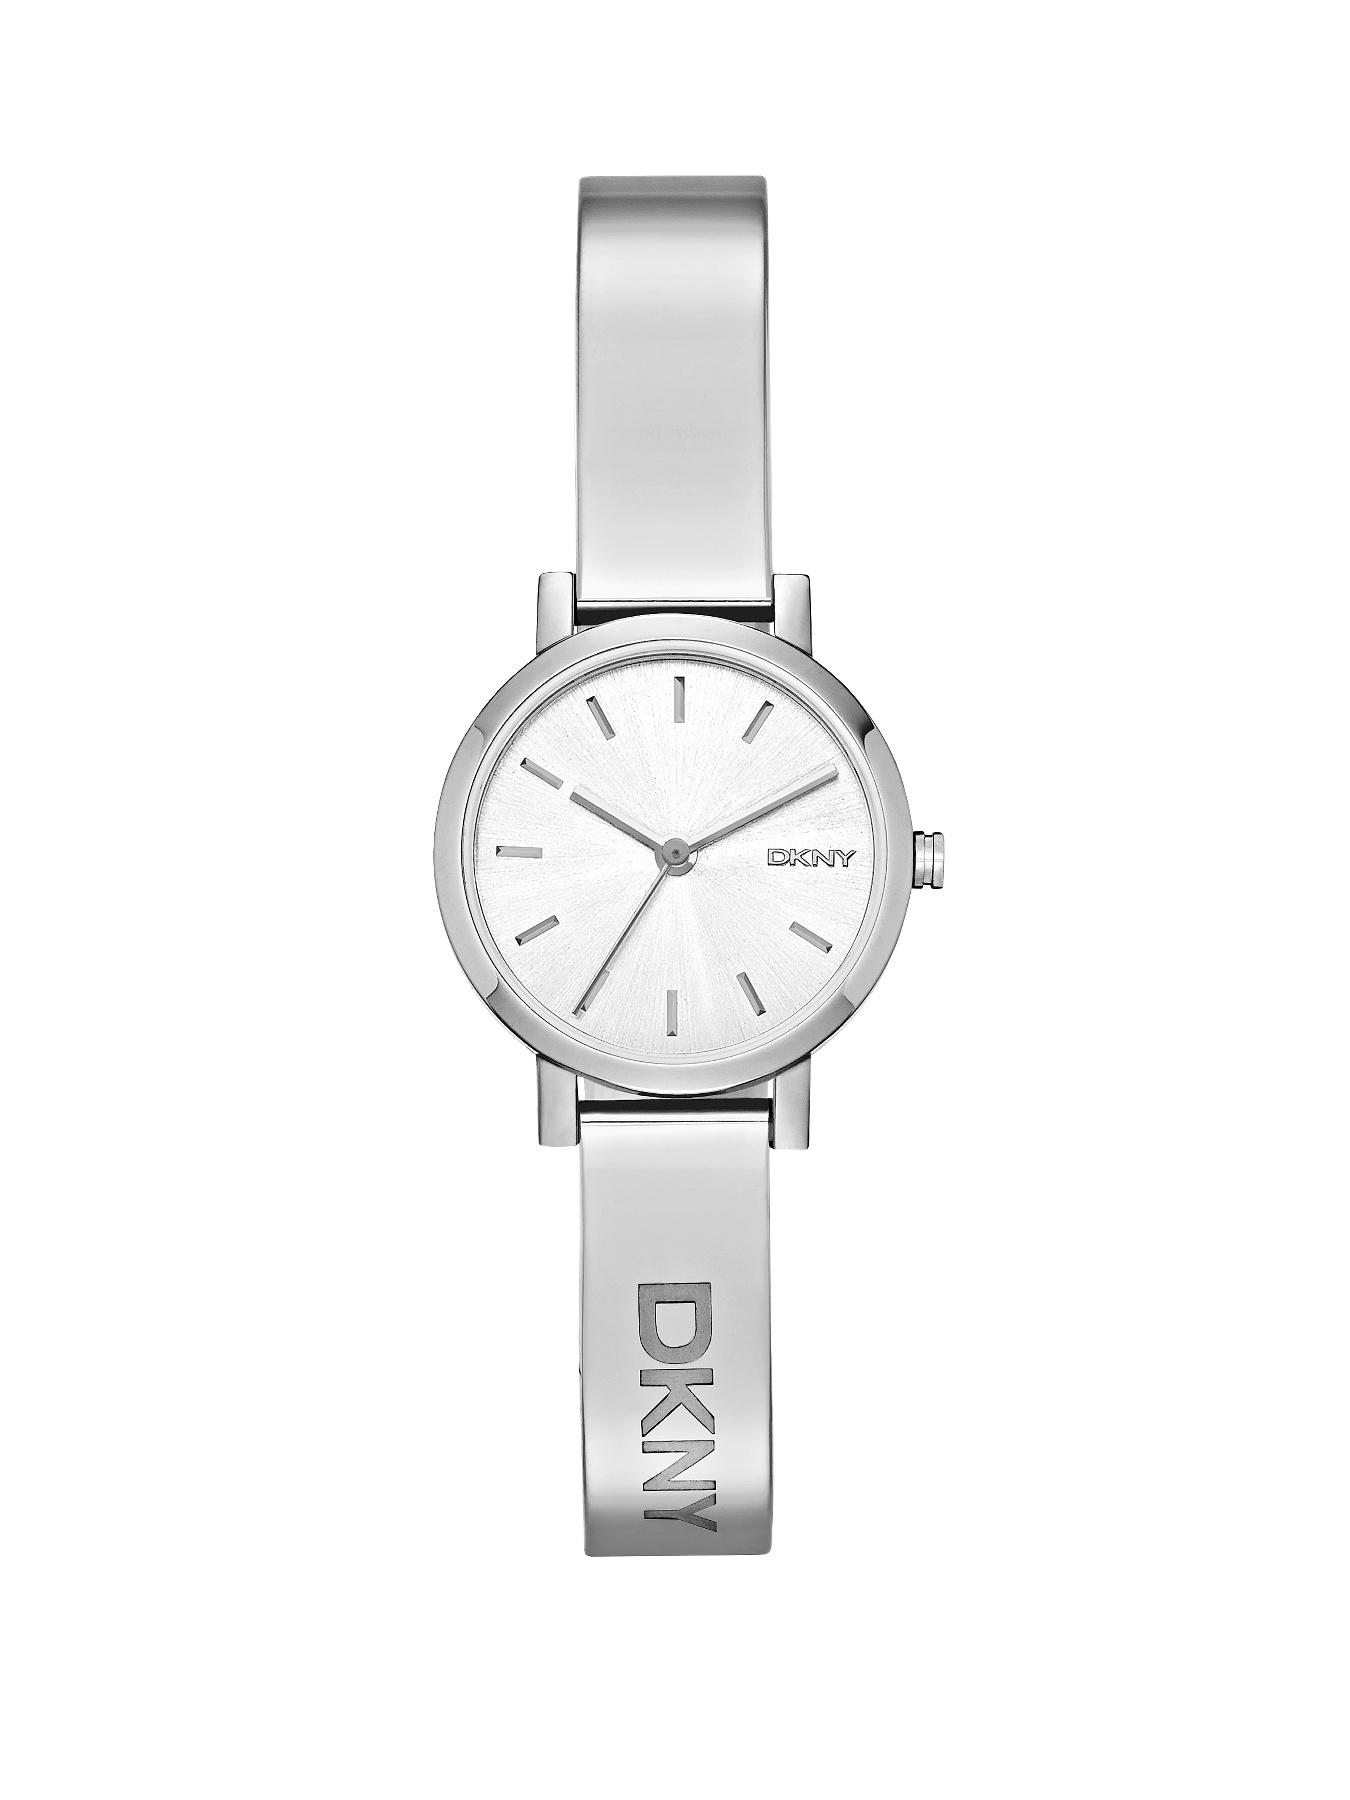 DKNY Soho Stainless Steel Silver-Tone Half Bangle Ladies Watch